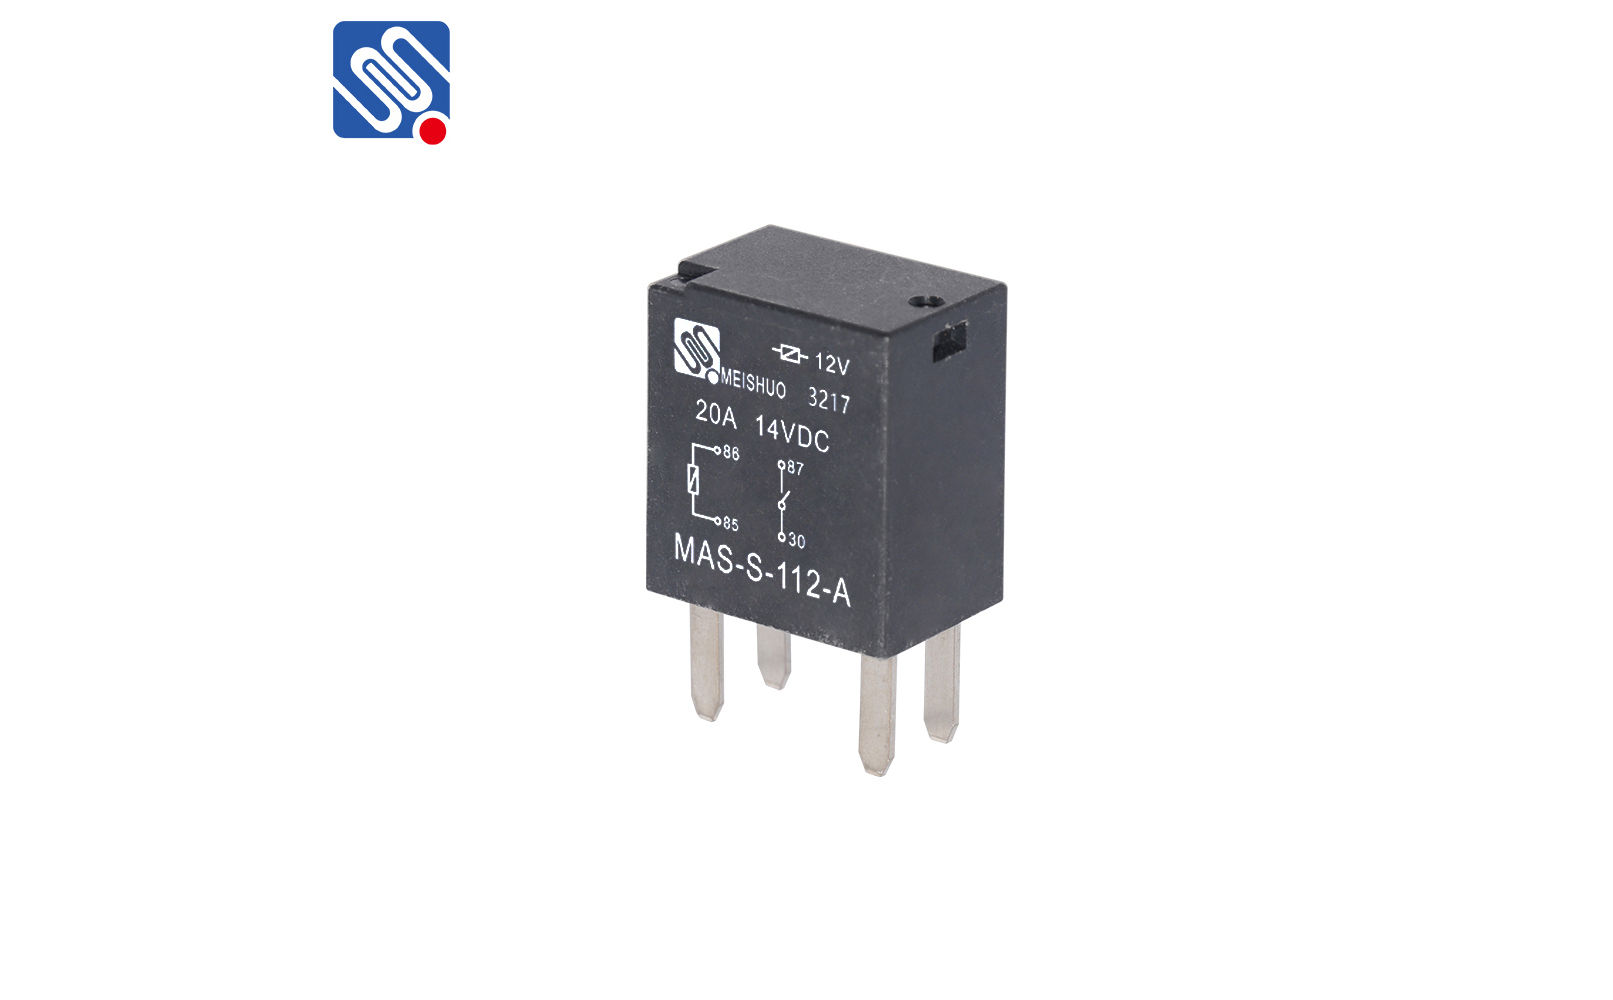 Iso 280 Mini Relay Wiring Diagram - Wiring Diagram Song Chuan Relays Wiring Schematic on